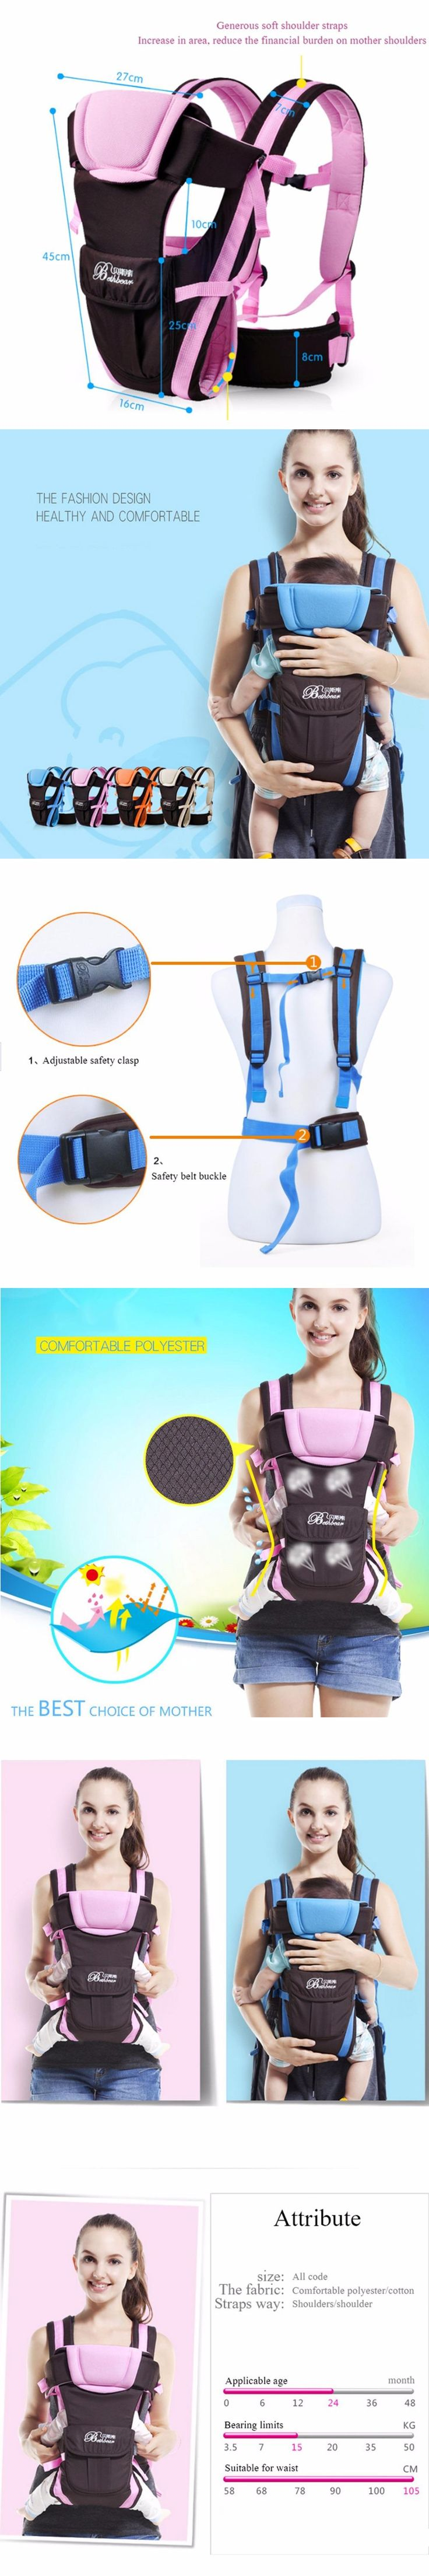 new hipseat for prevent o-type legs aviation aluminum core Ergonomic baby carriers manduca backpack save effort kid sling